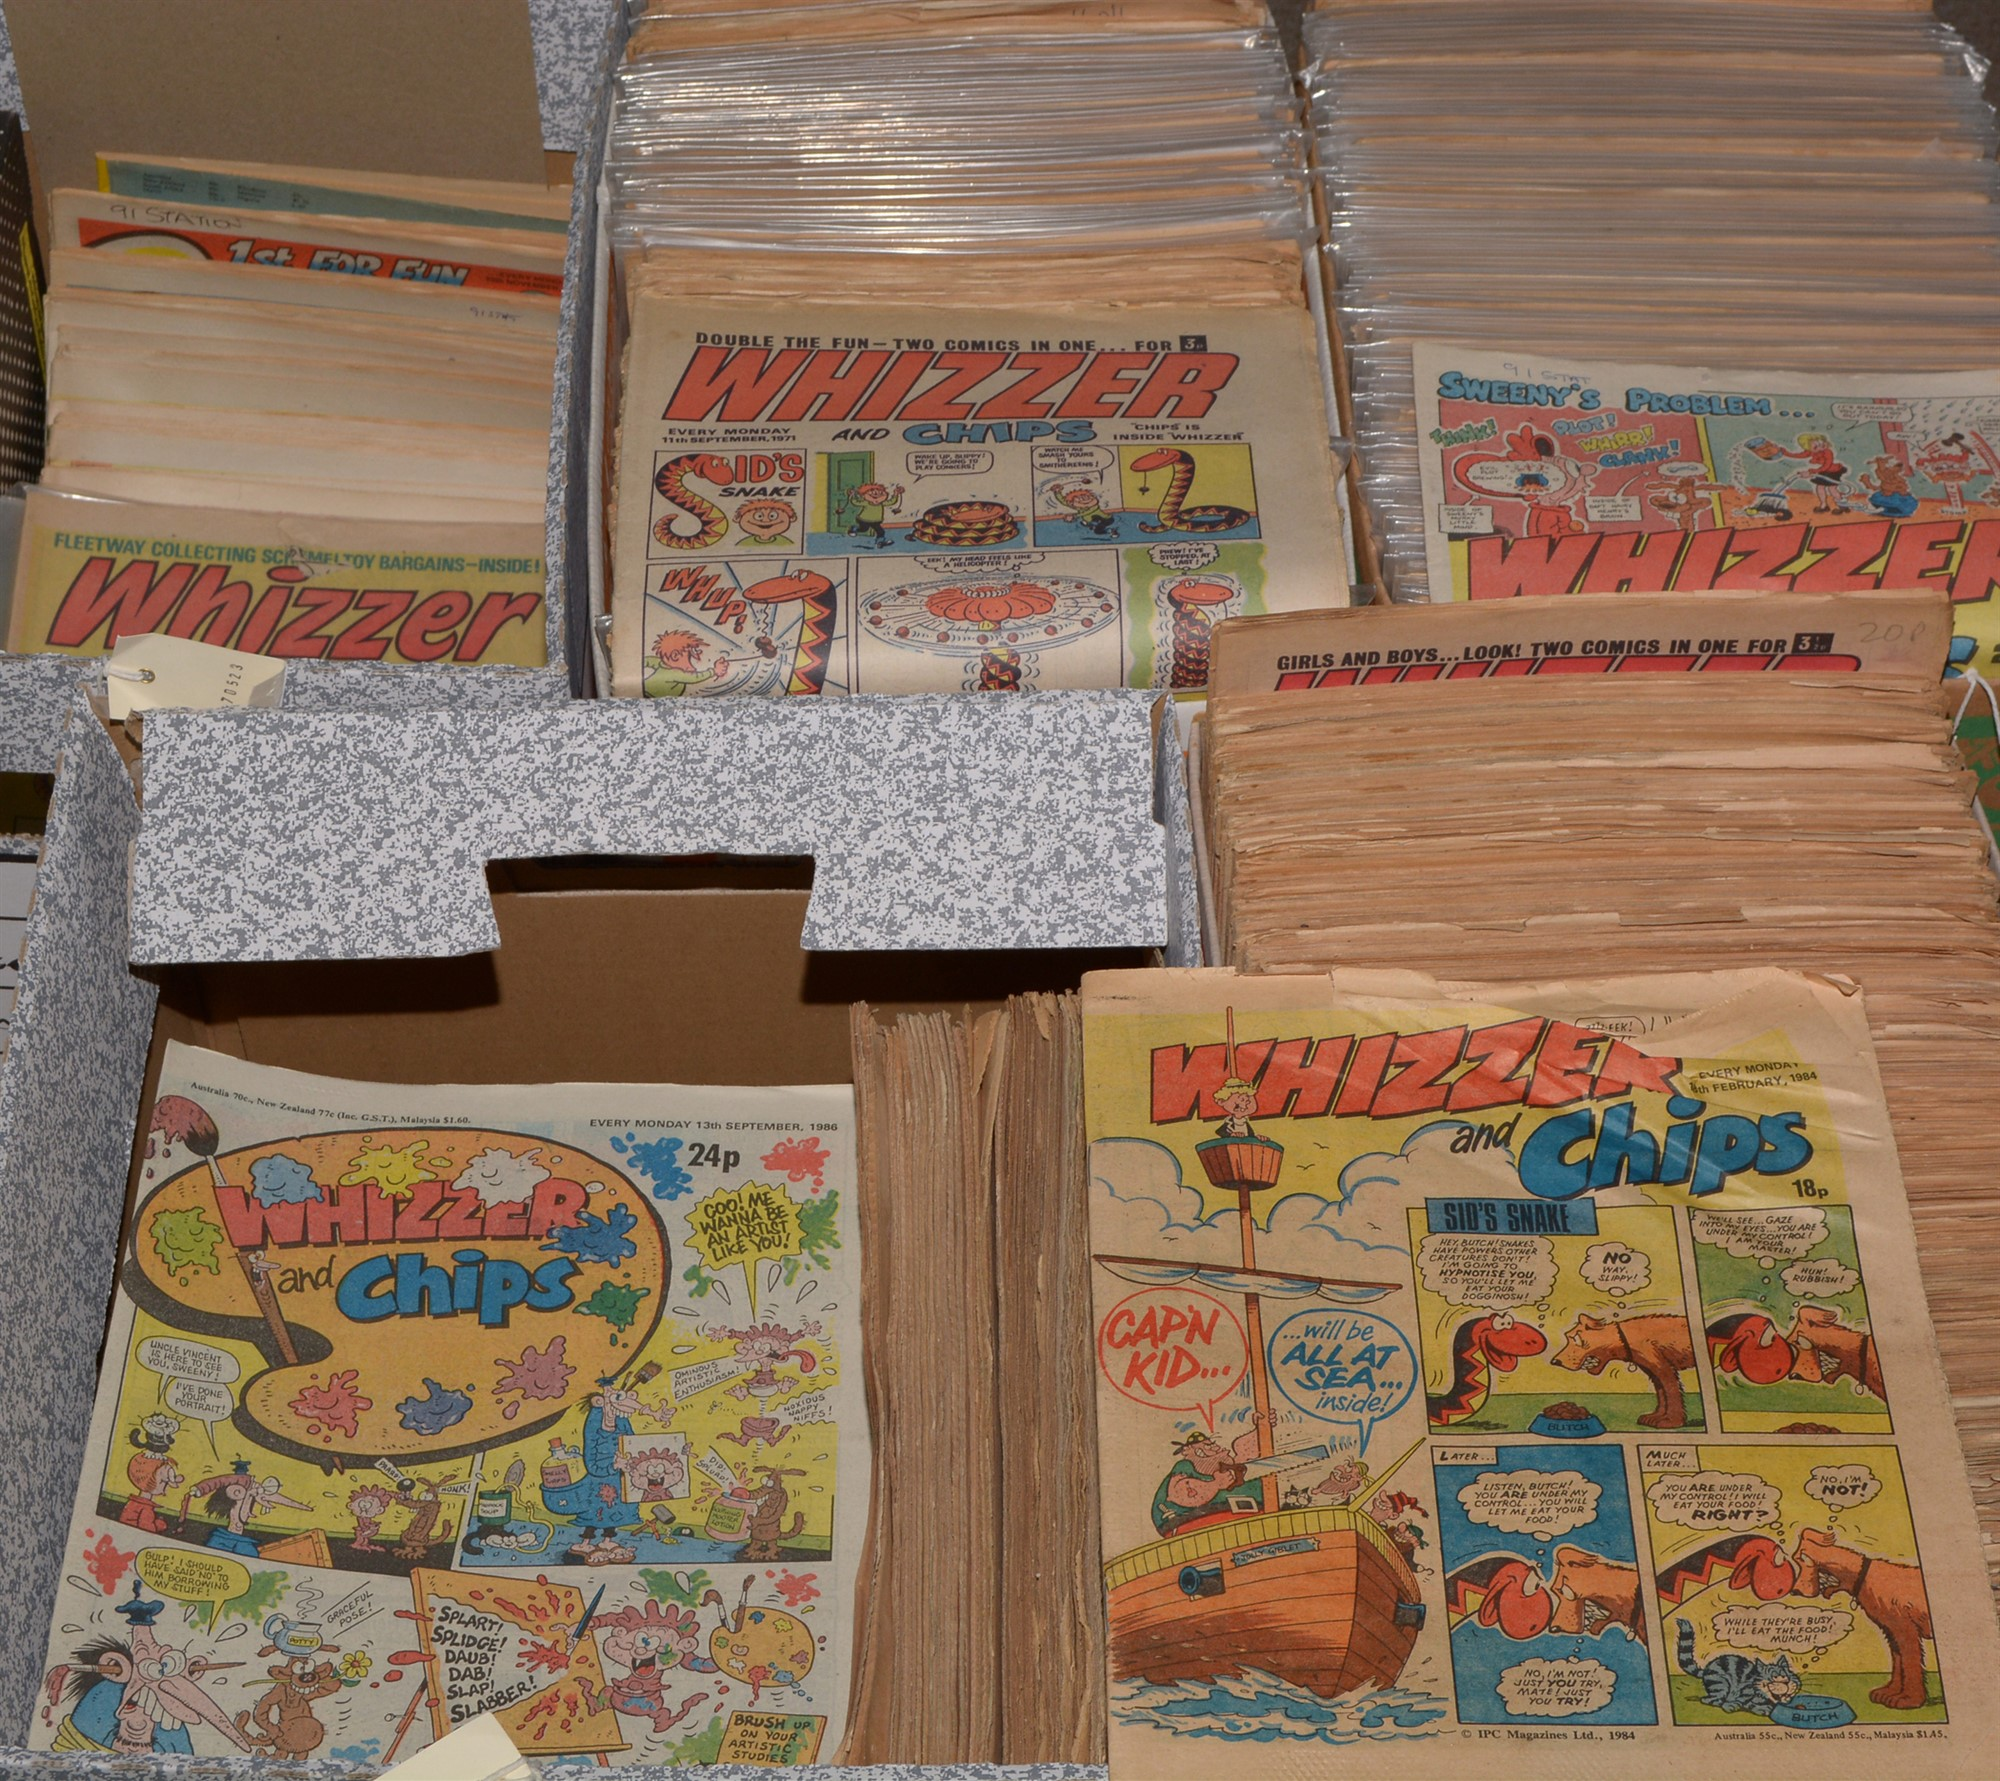 A collection of Whizzer and Chips comics from 1970's and 1980's. (5 boxes)